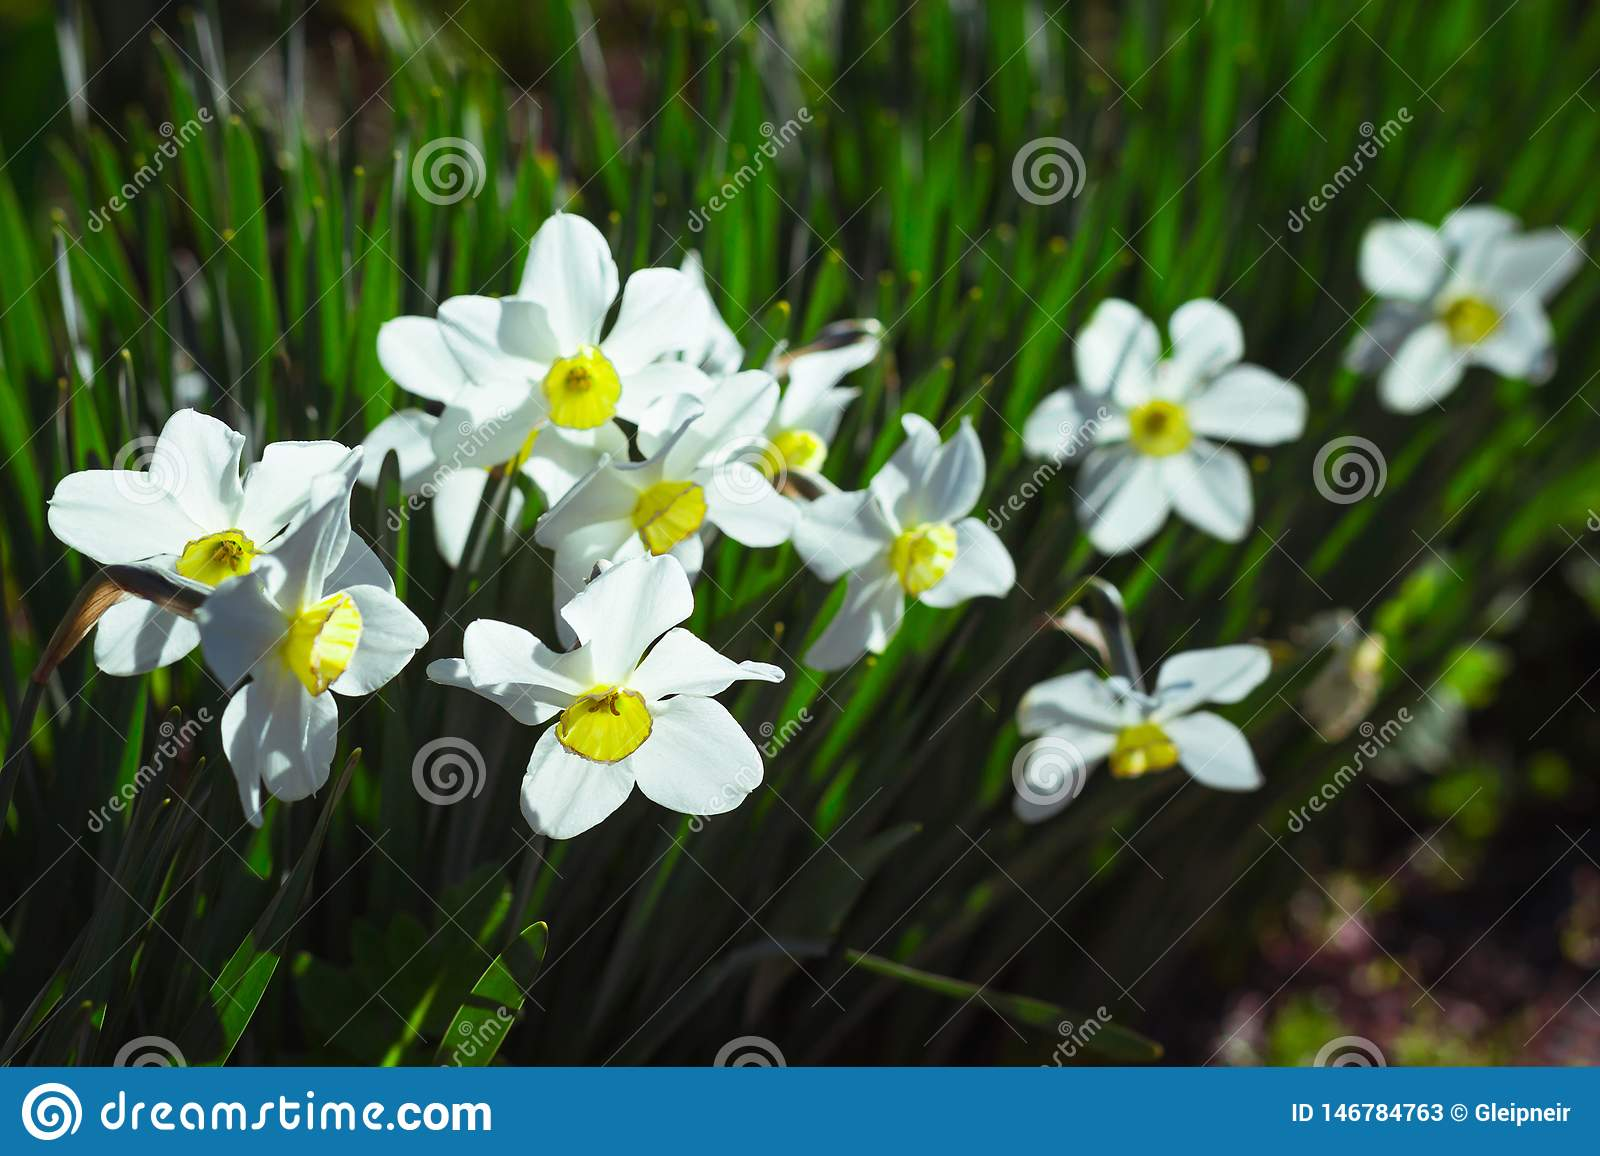 Symbol of Spring Revival and False Pride   Narcissus Flowers ...